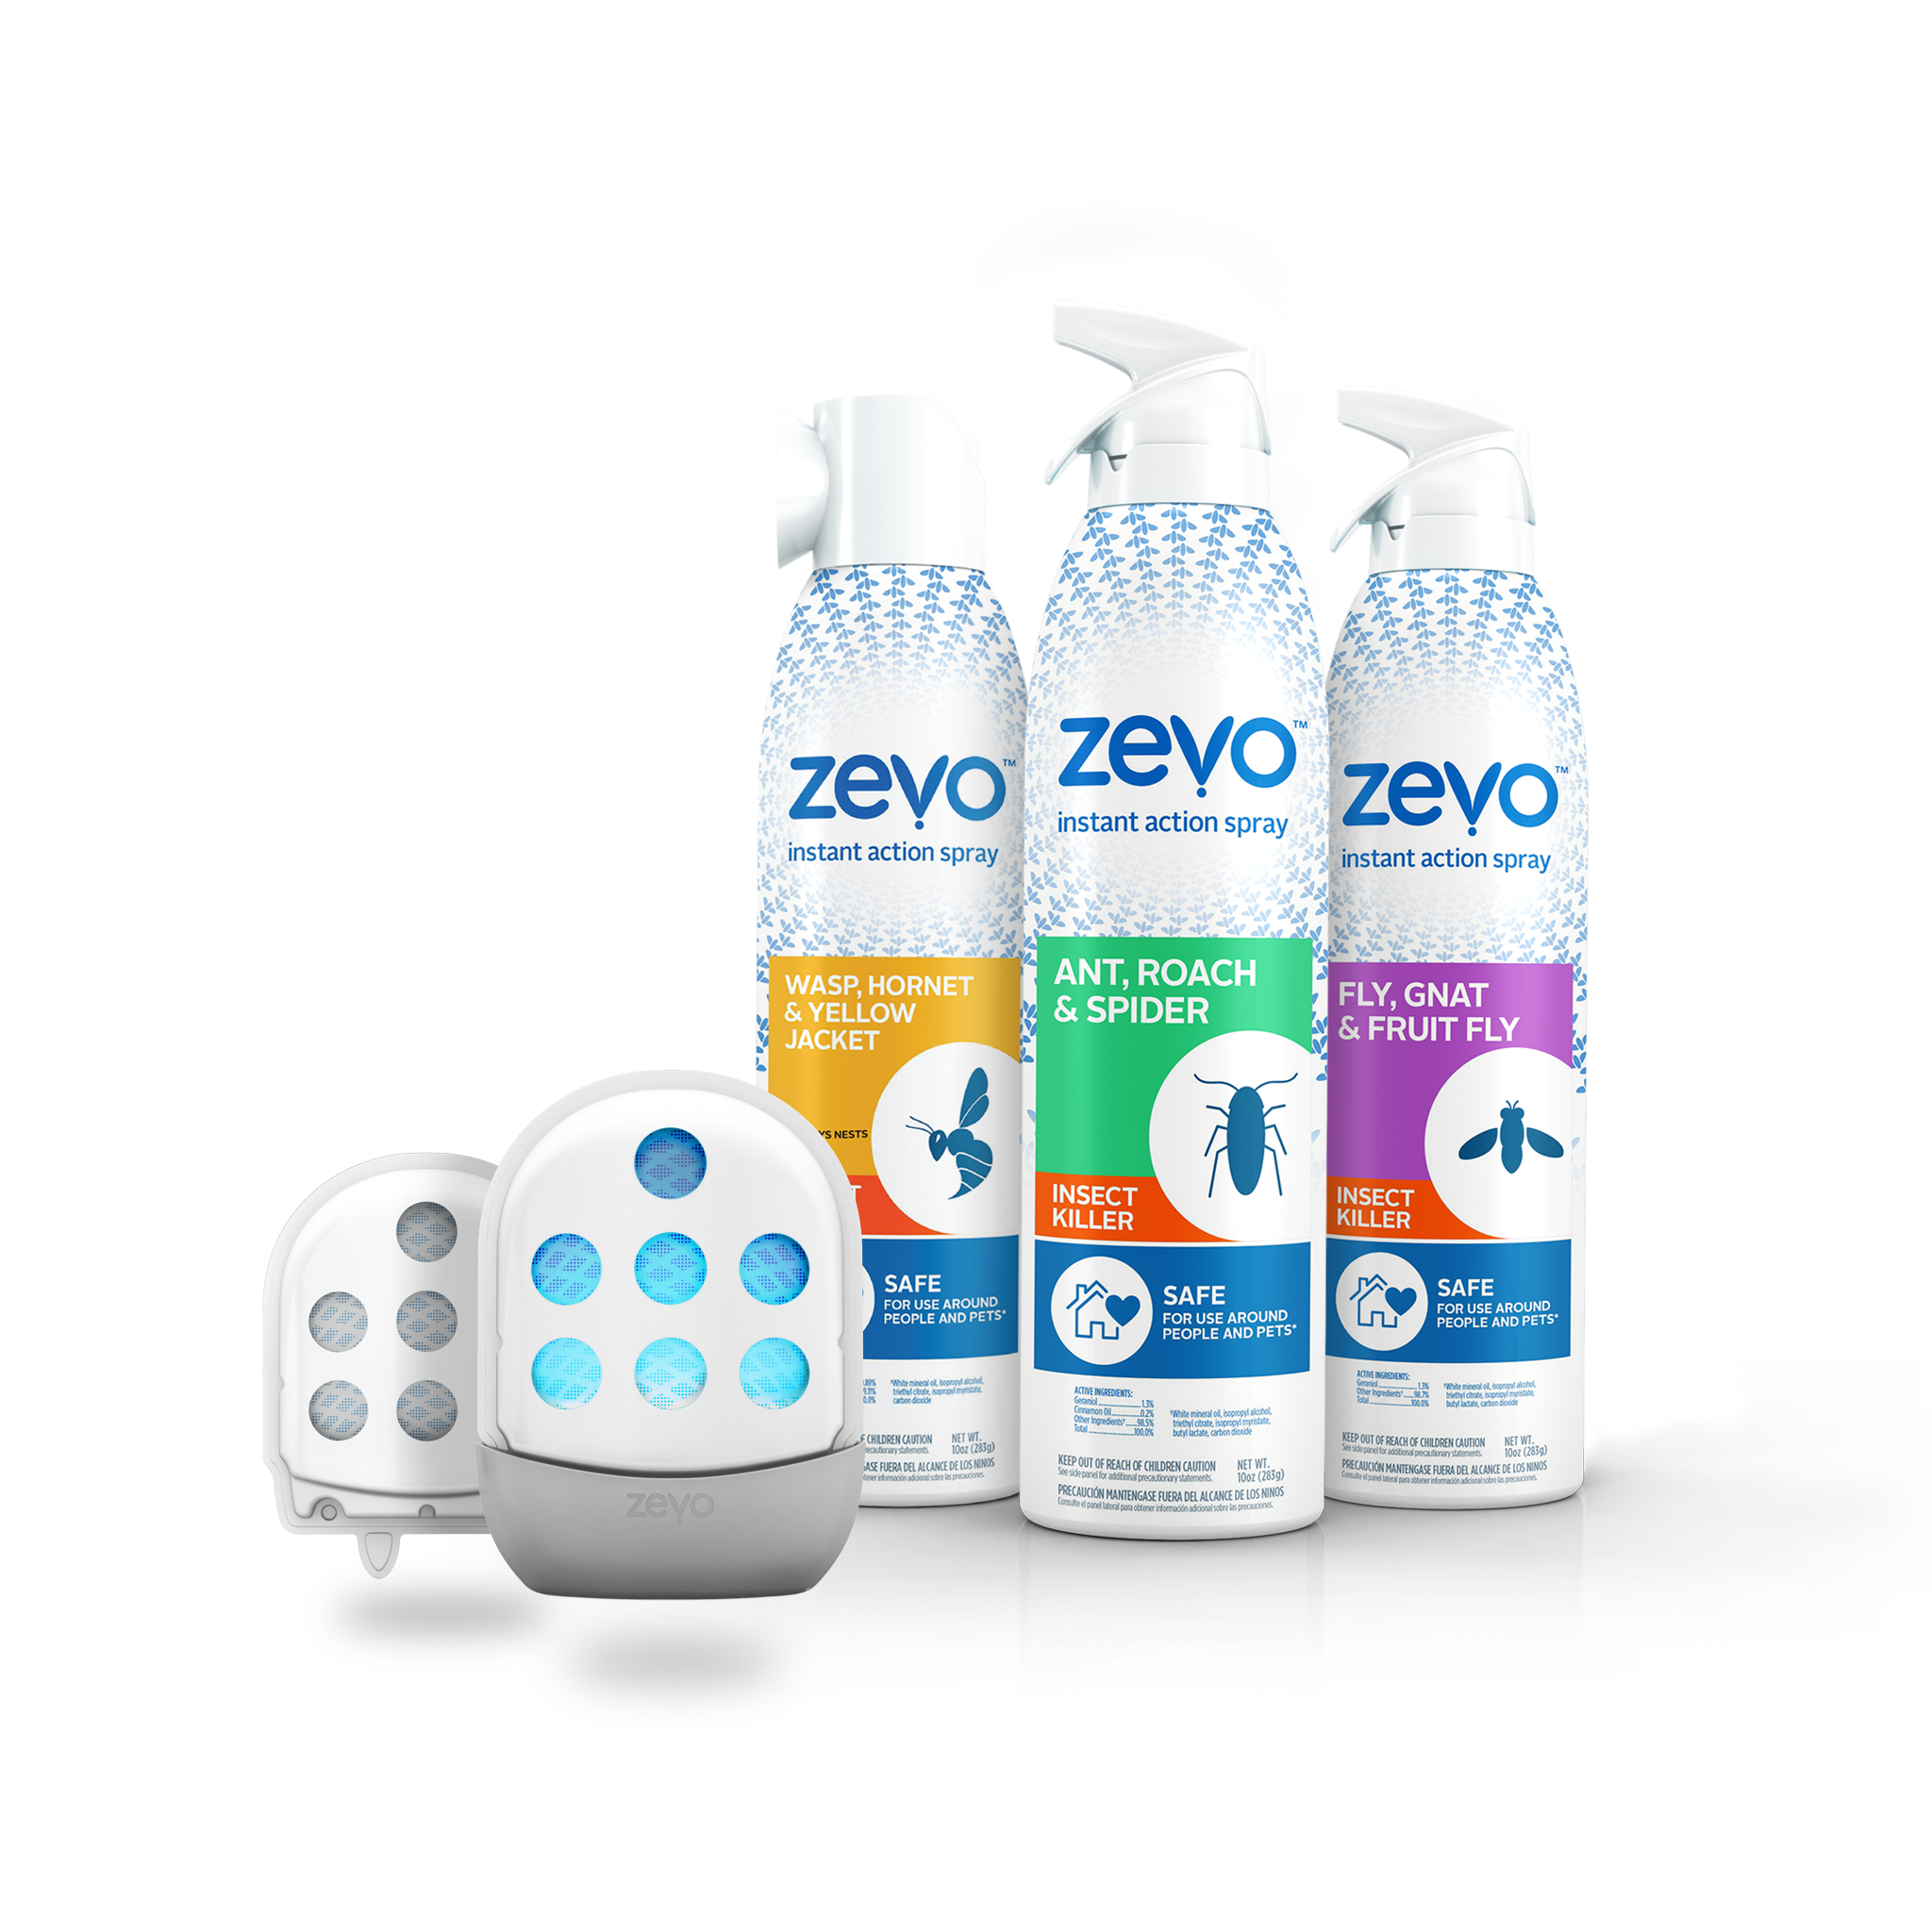 Zevo insect traps and sprays